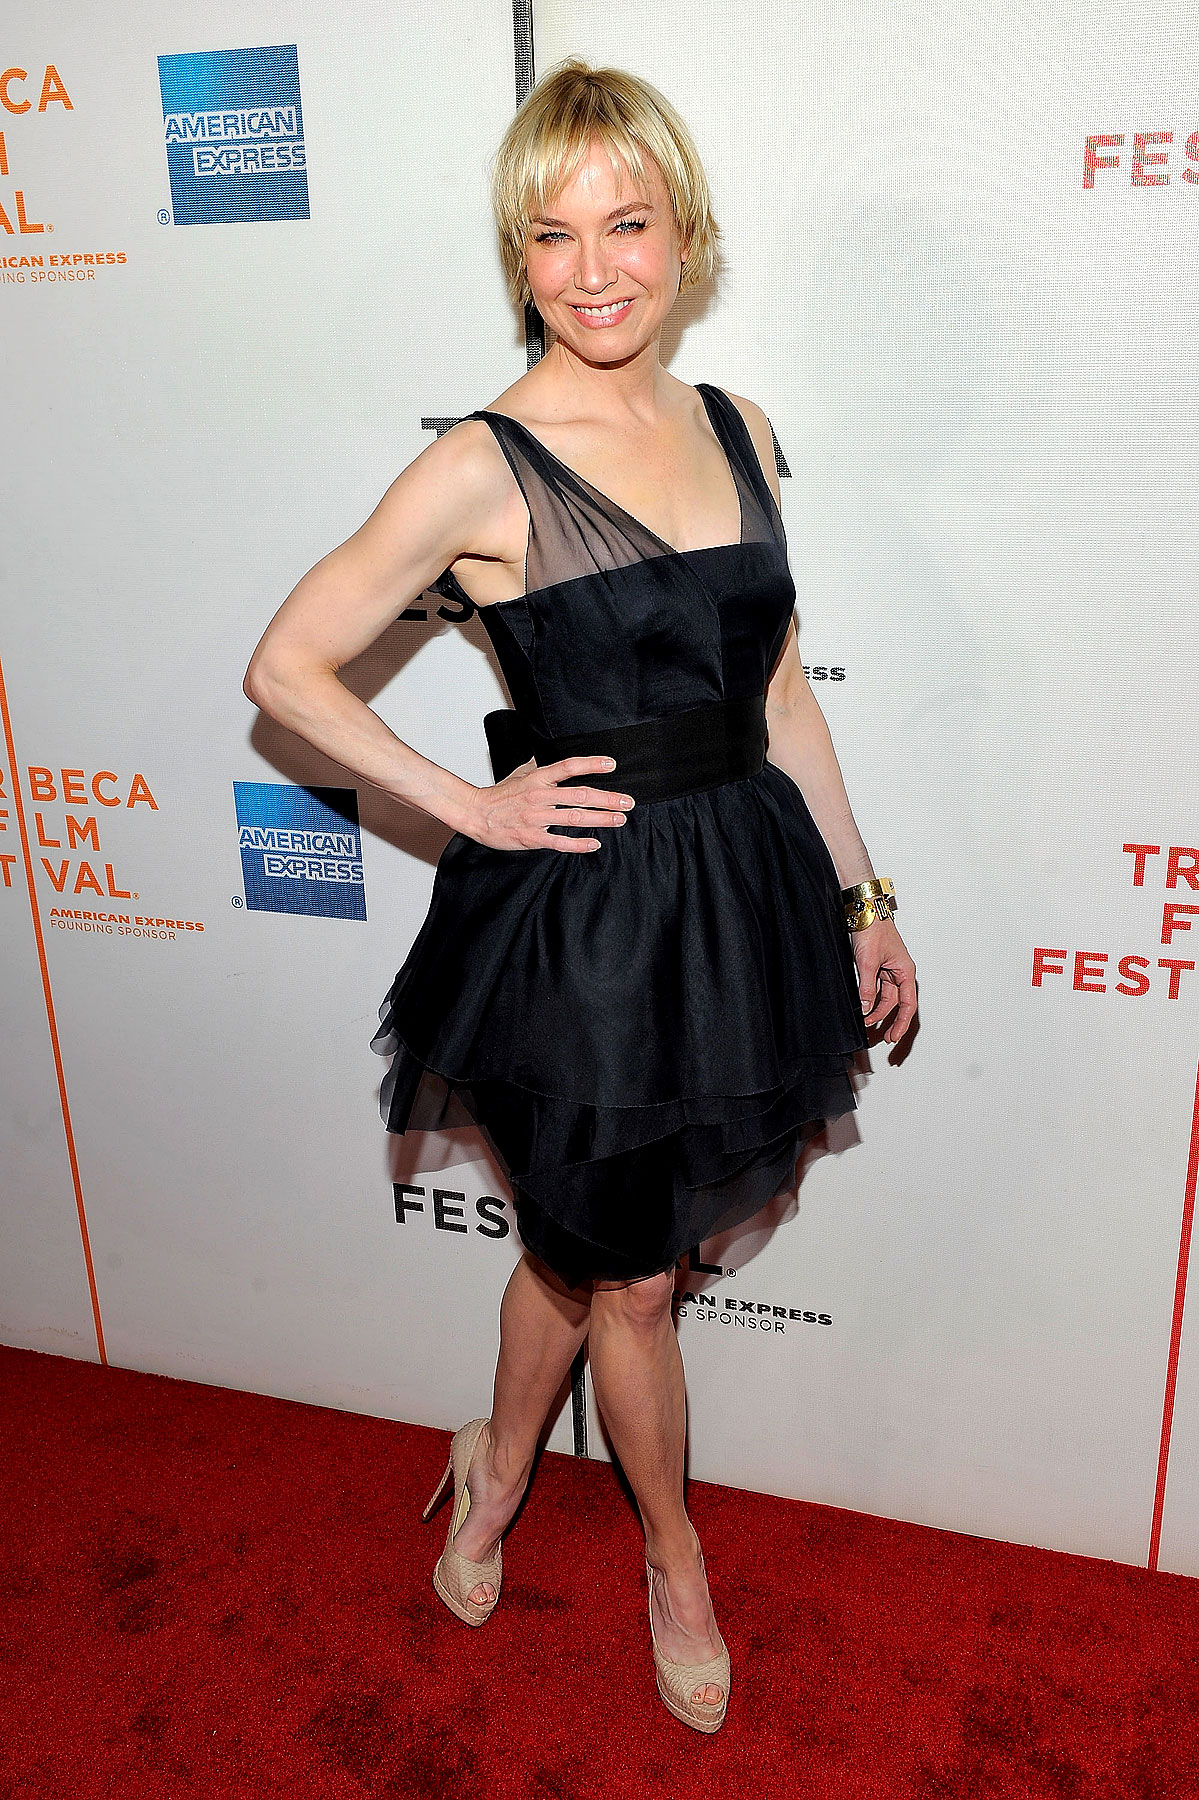 Fashion FTW: Renee Zellweger Makes Gothic Ballerina Look Cool (PHOTOS)